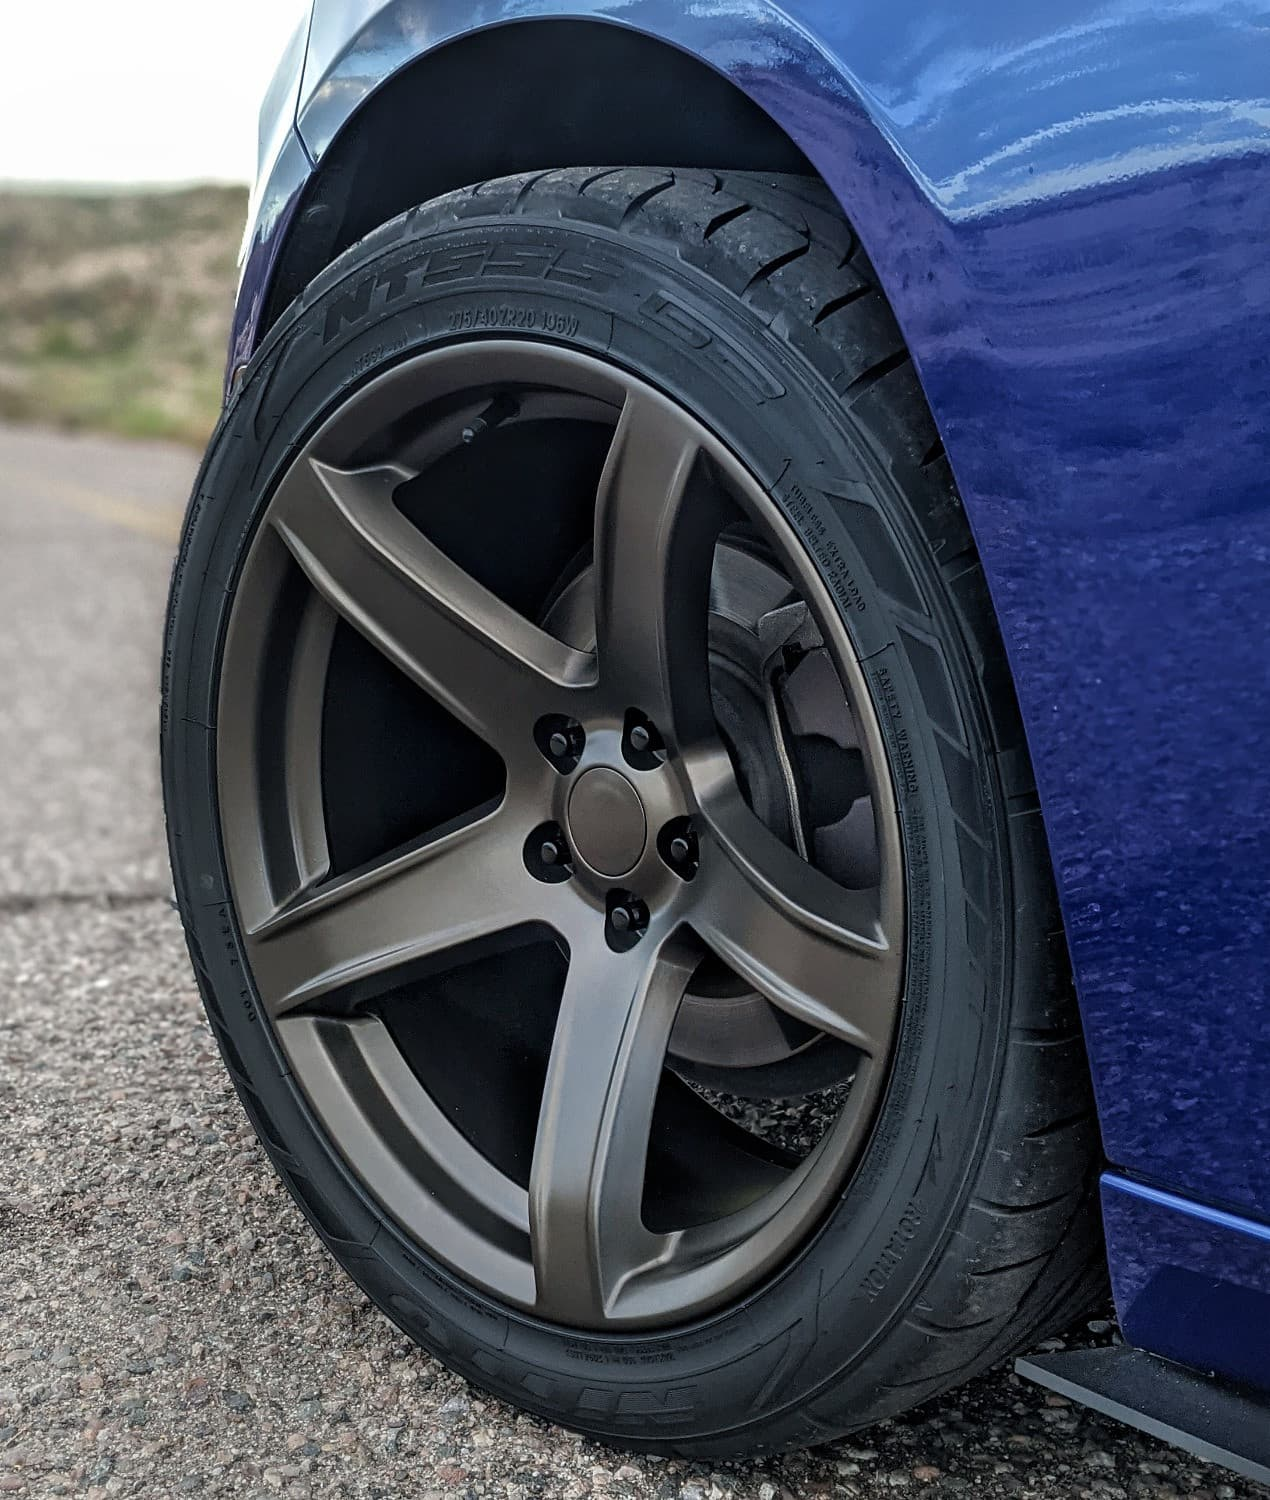 A close up on the Factory Reproductions Fr77 wheels in 20x9.5 +15 on a Dodge Charger SXT